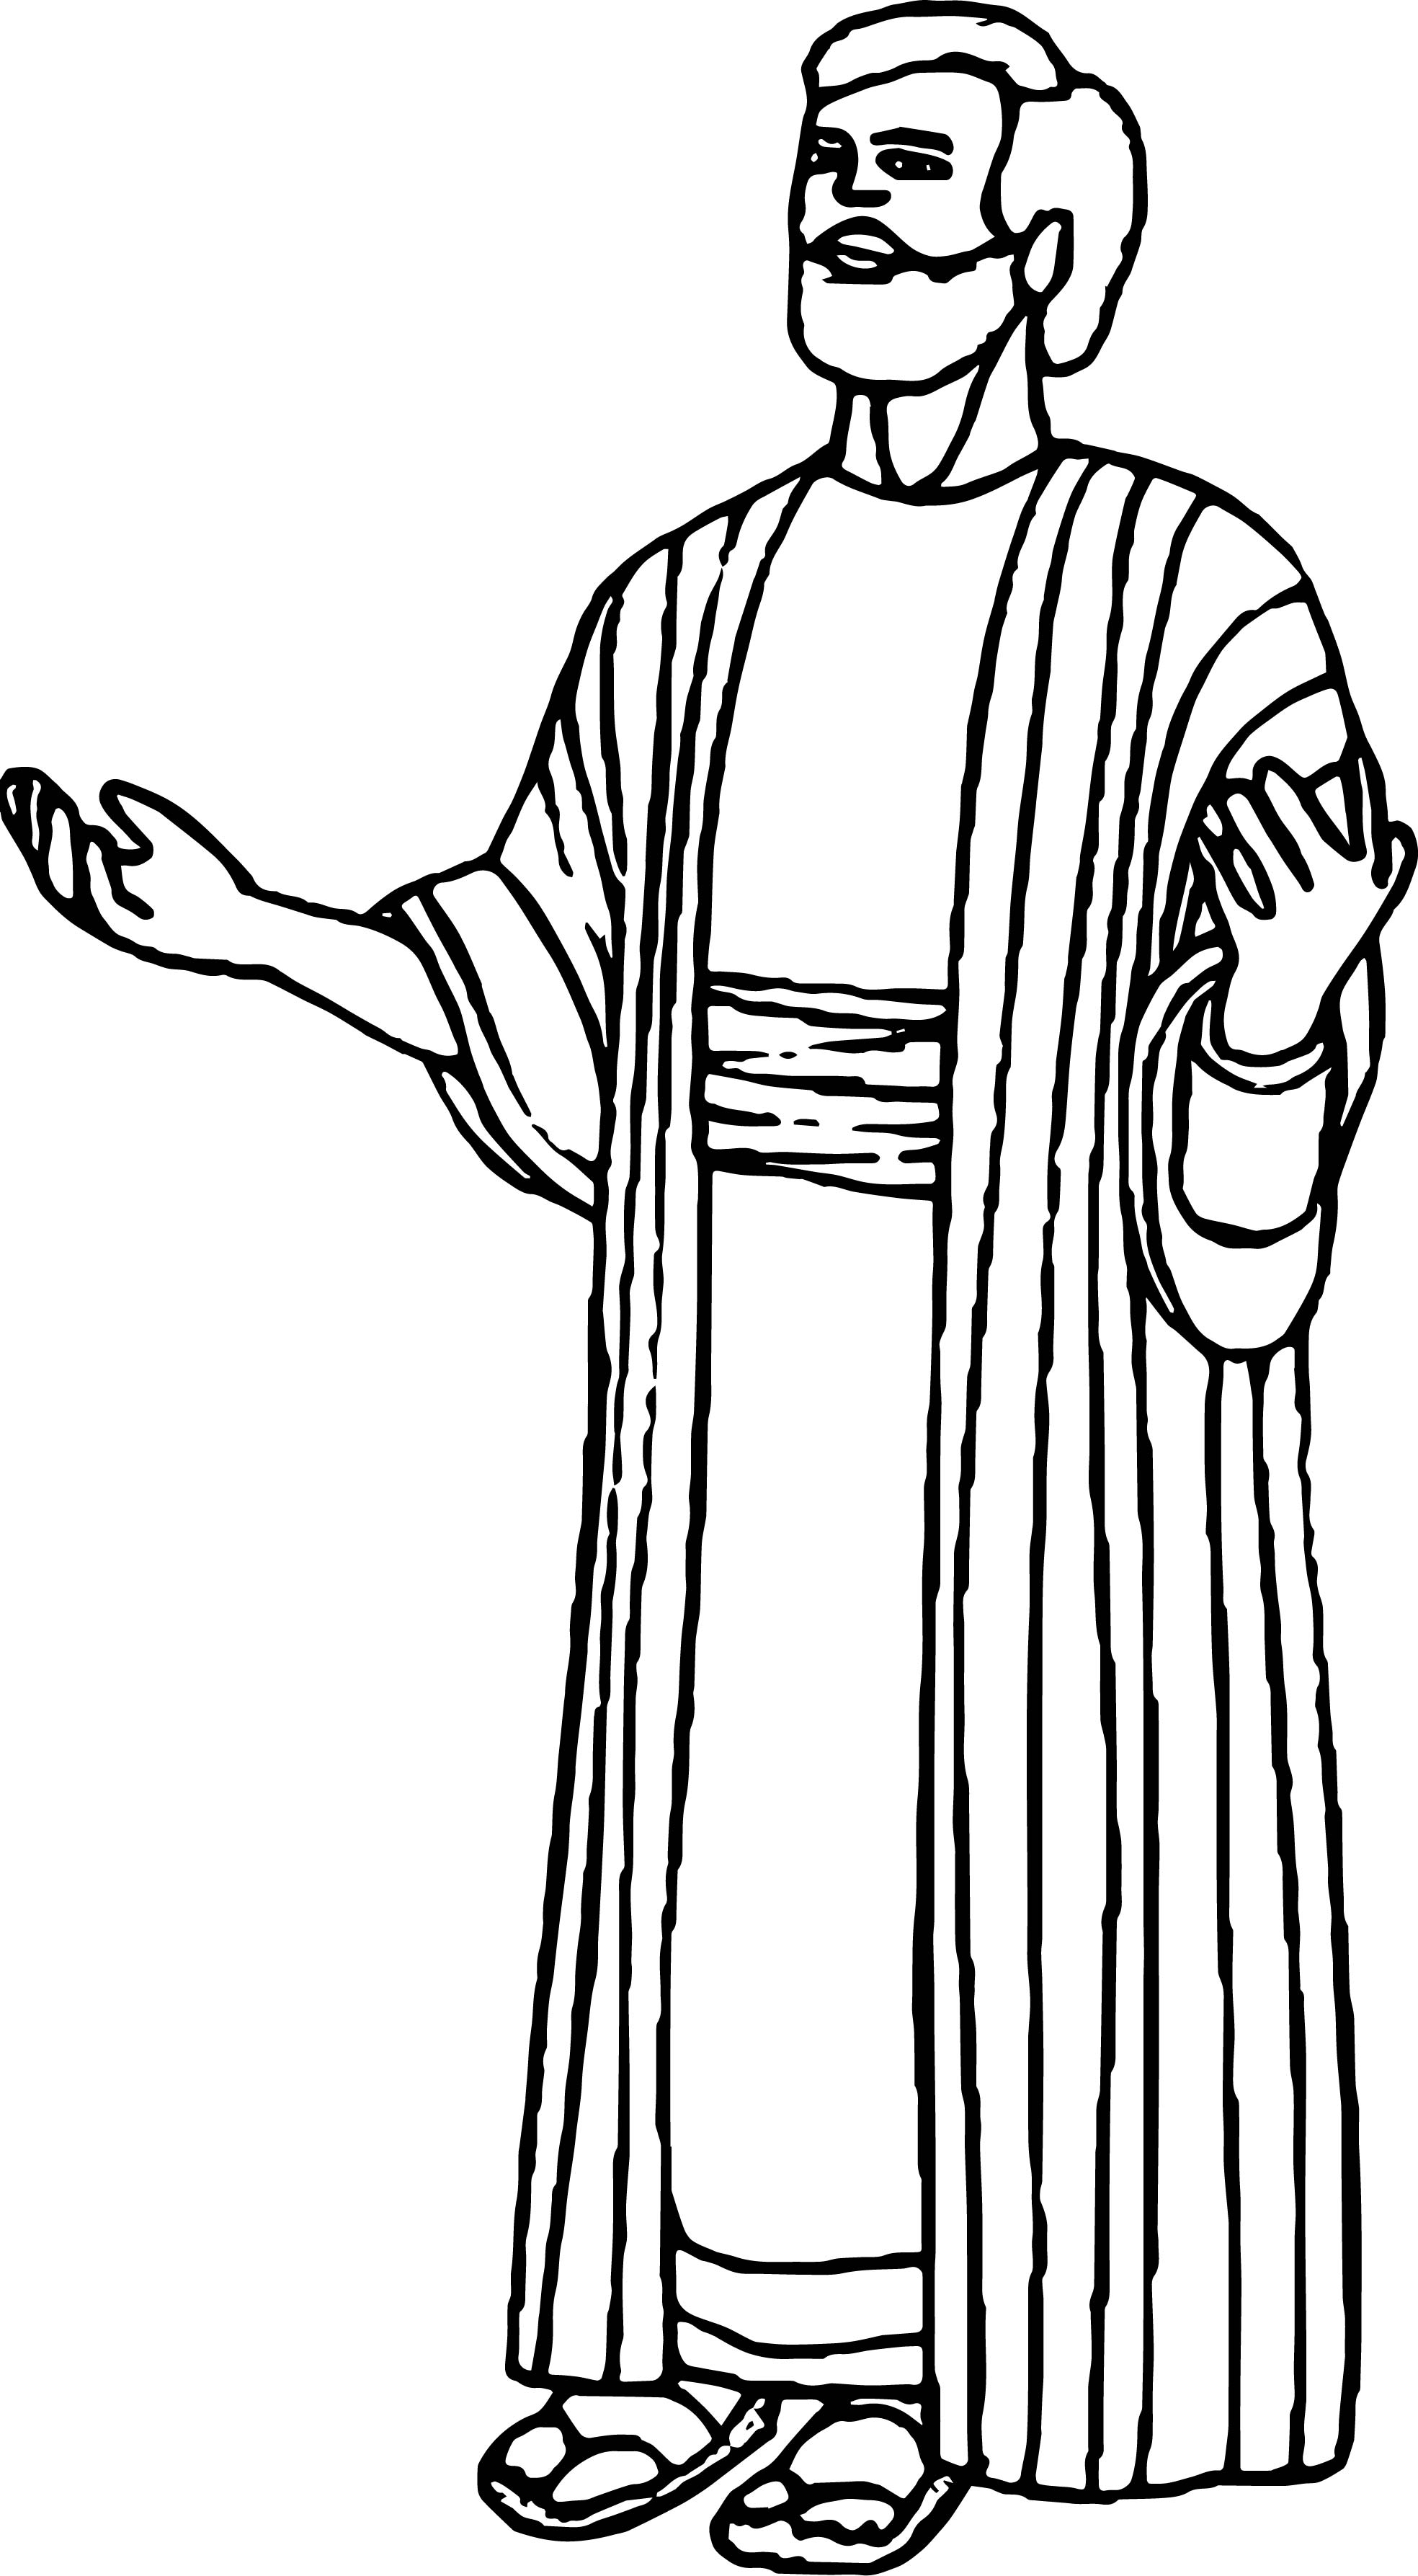 apostle paul coloring page prayer apostle paul coloring page